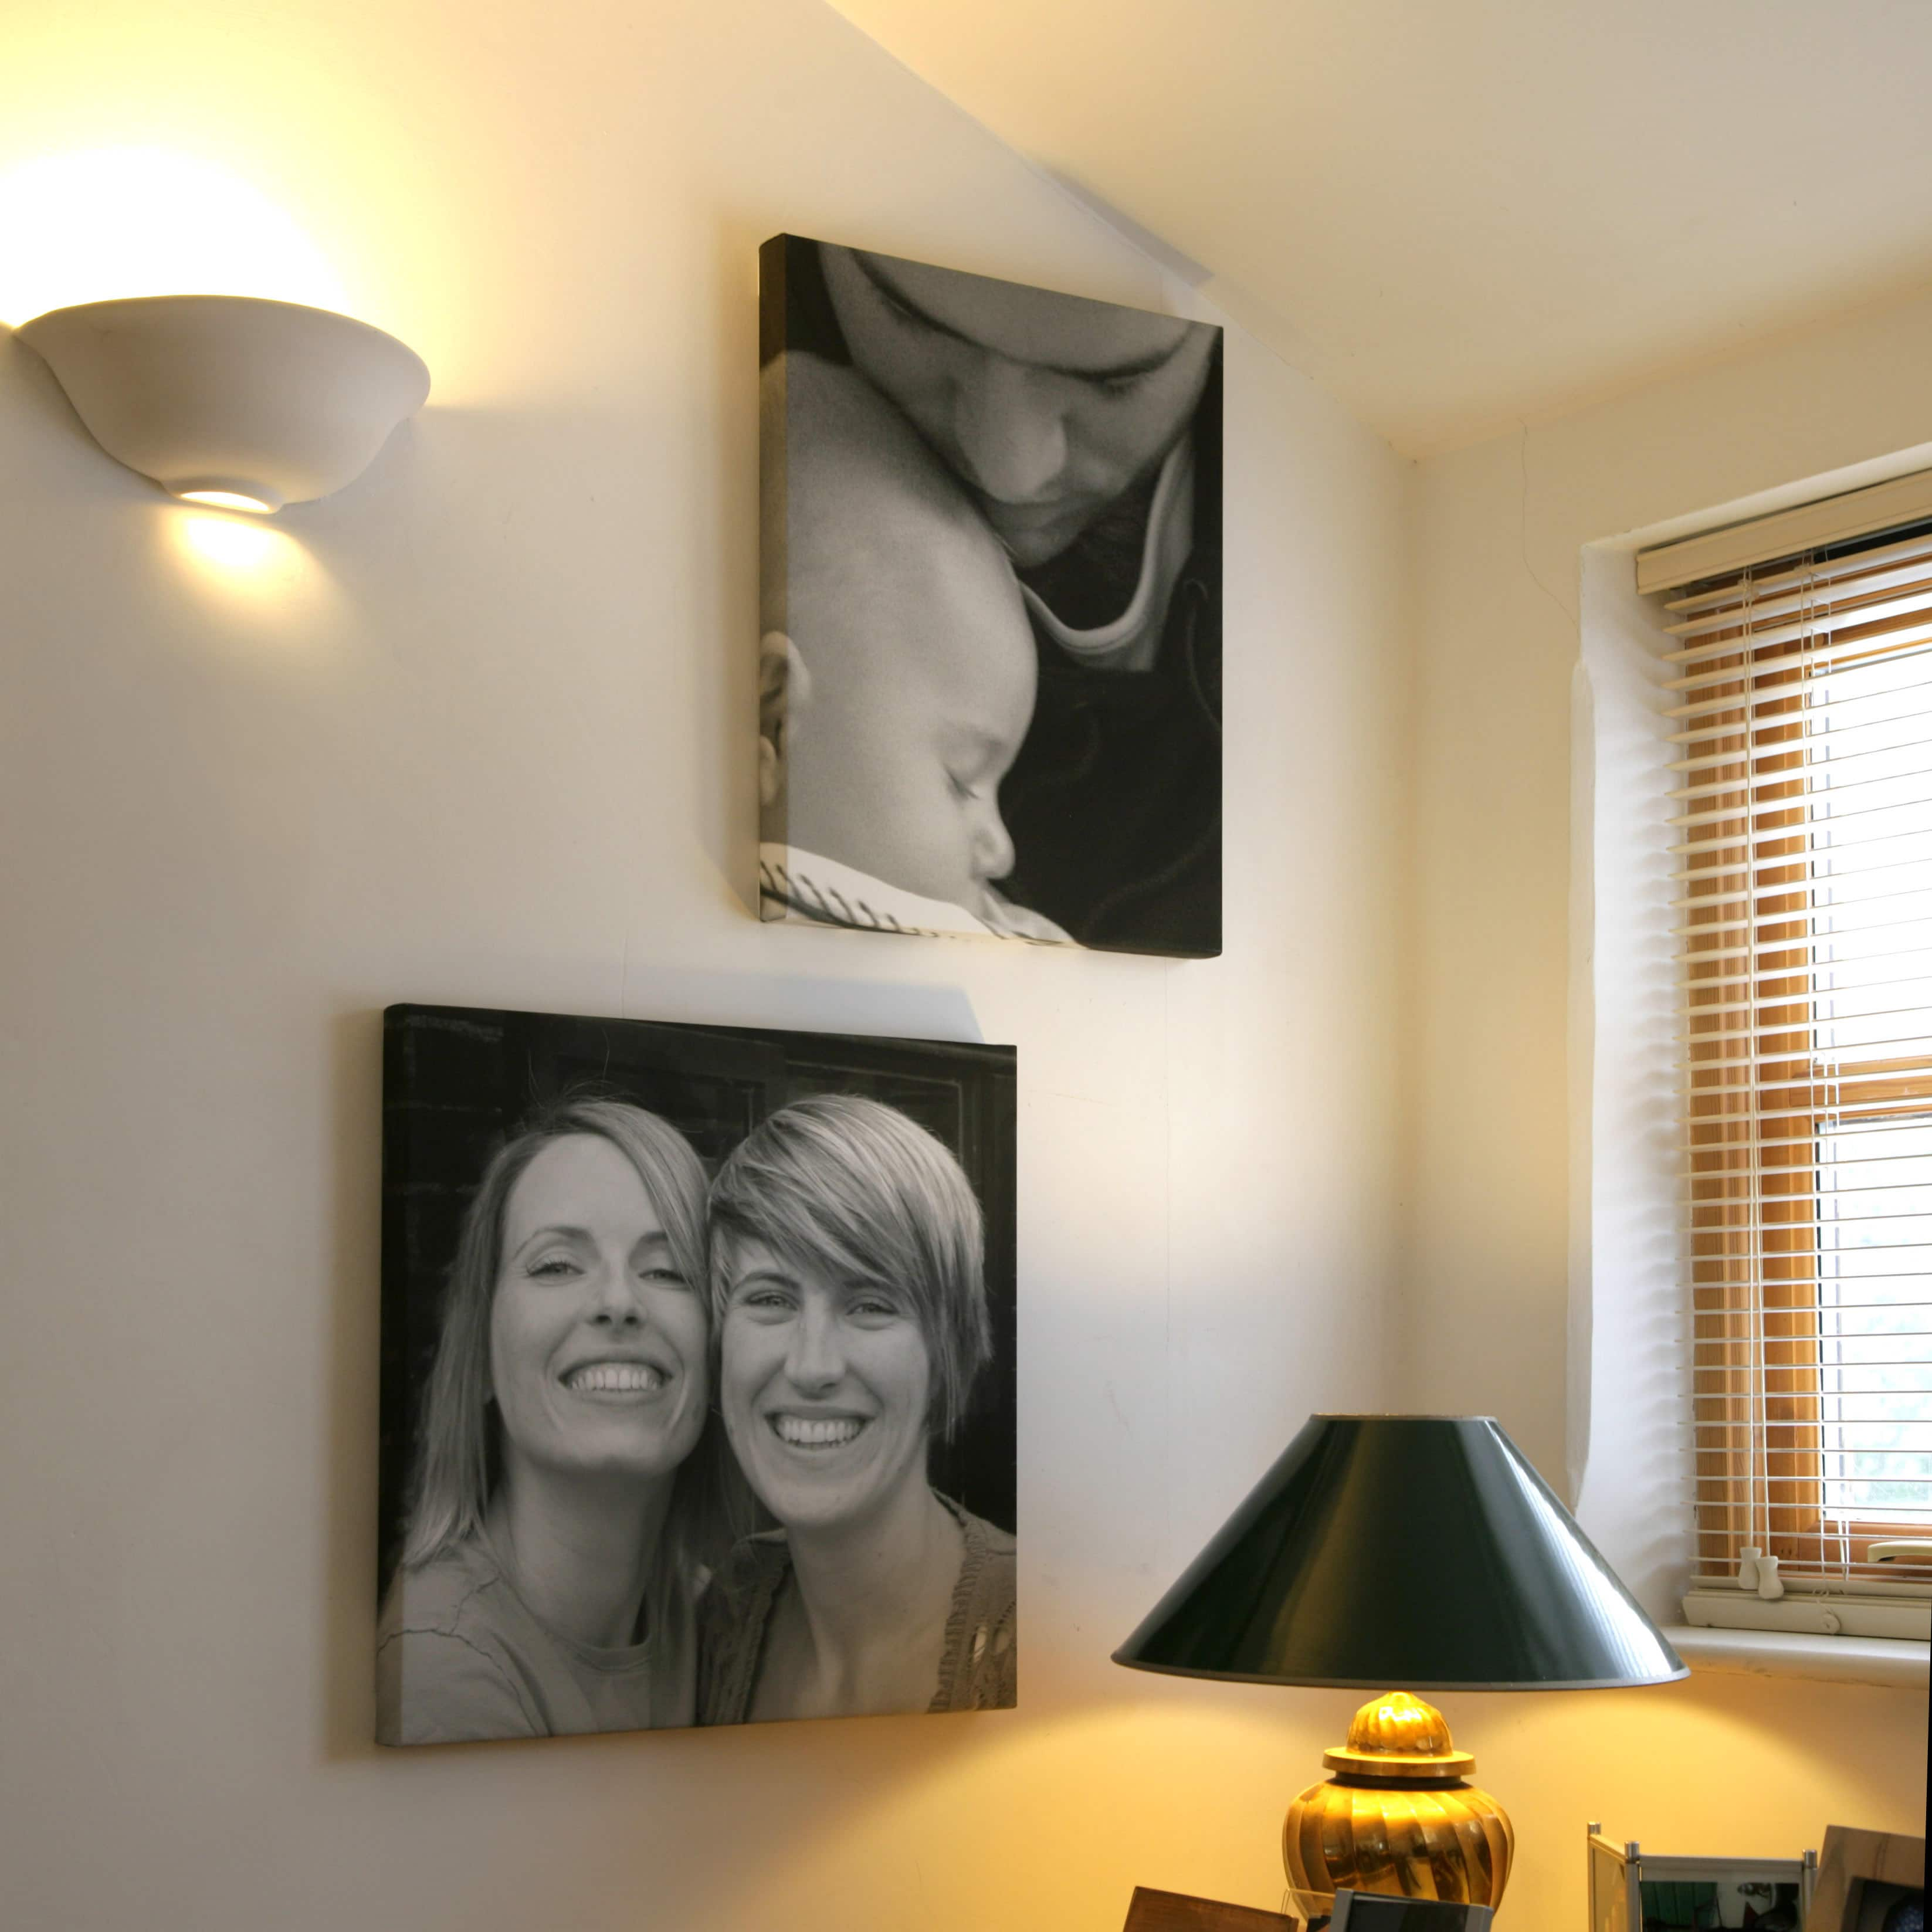 Family portrait canvases in black and white